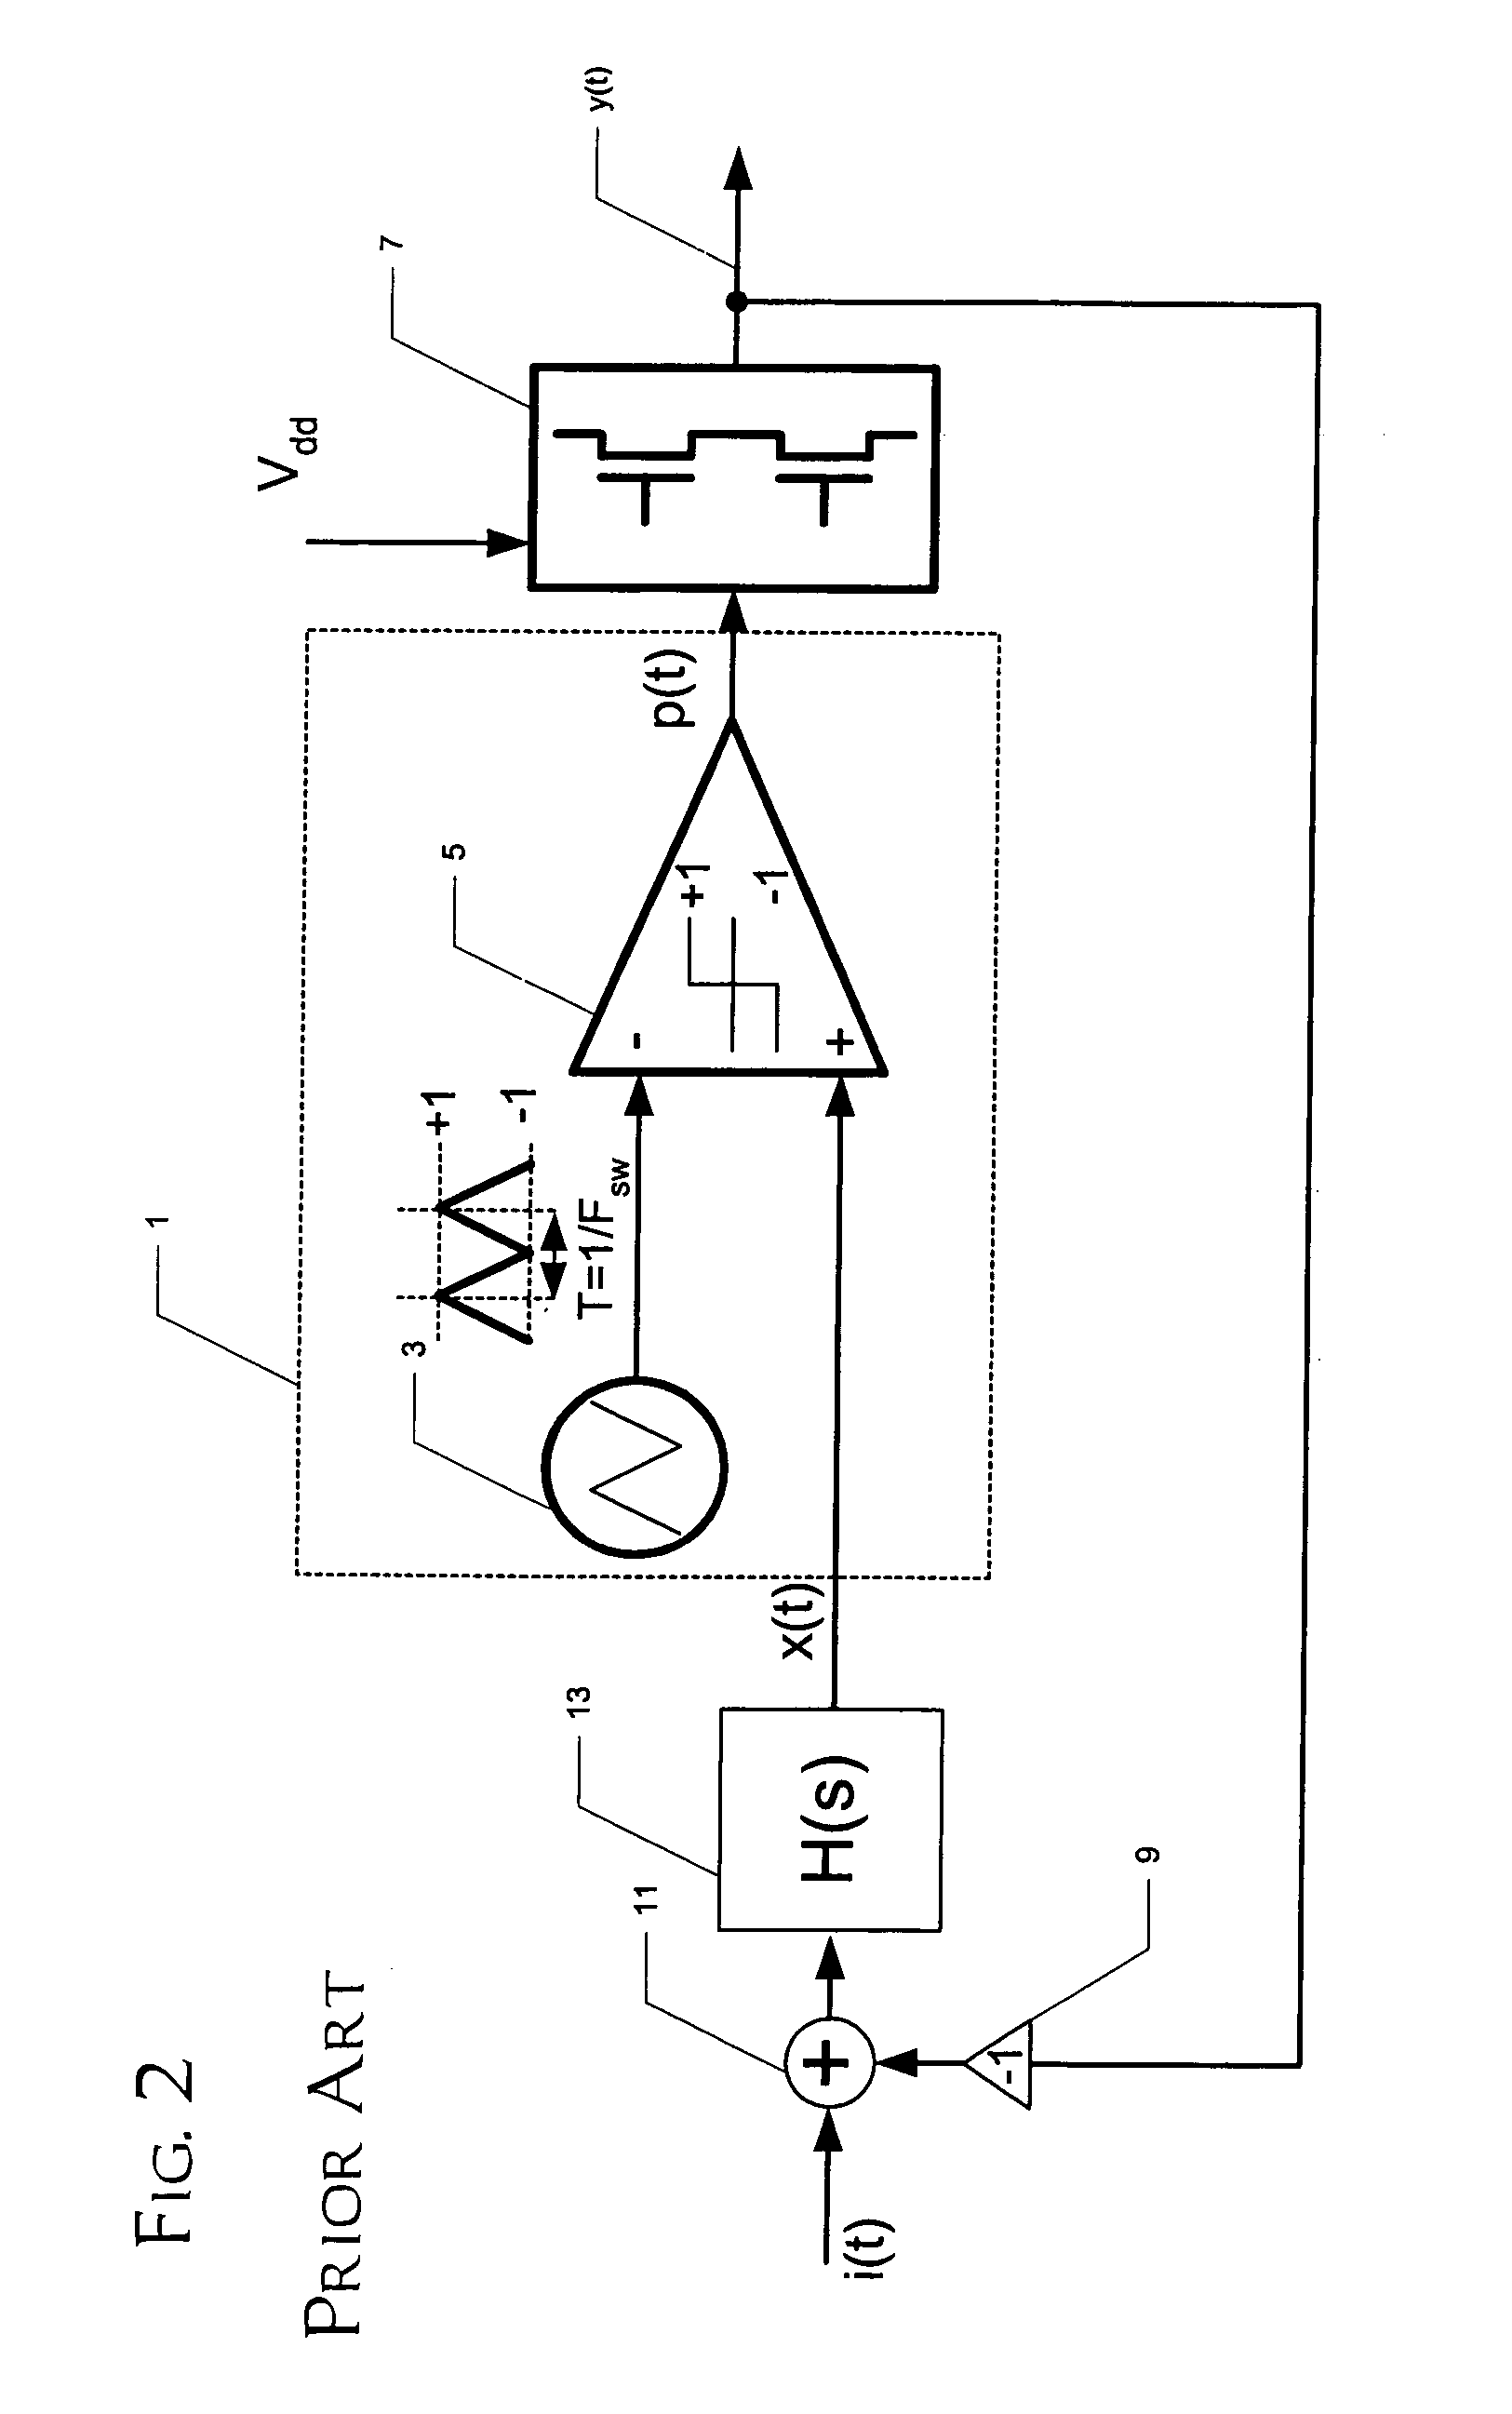 Patent Us7002406 Loop Filter For Class D Amplifiers Google Patents Highfidelity And Pure Sine Wave Inverter 1 Based On Amplifier Drawing